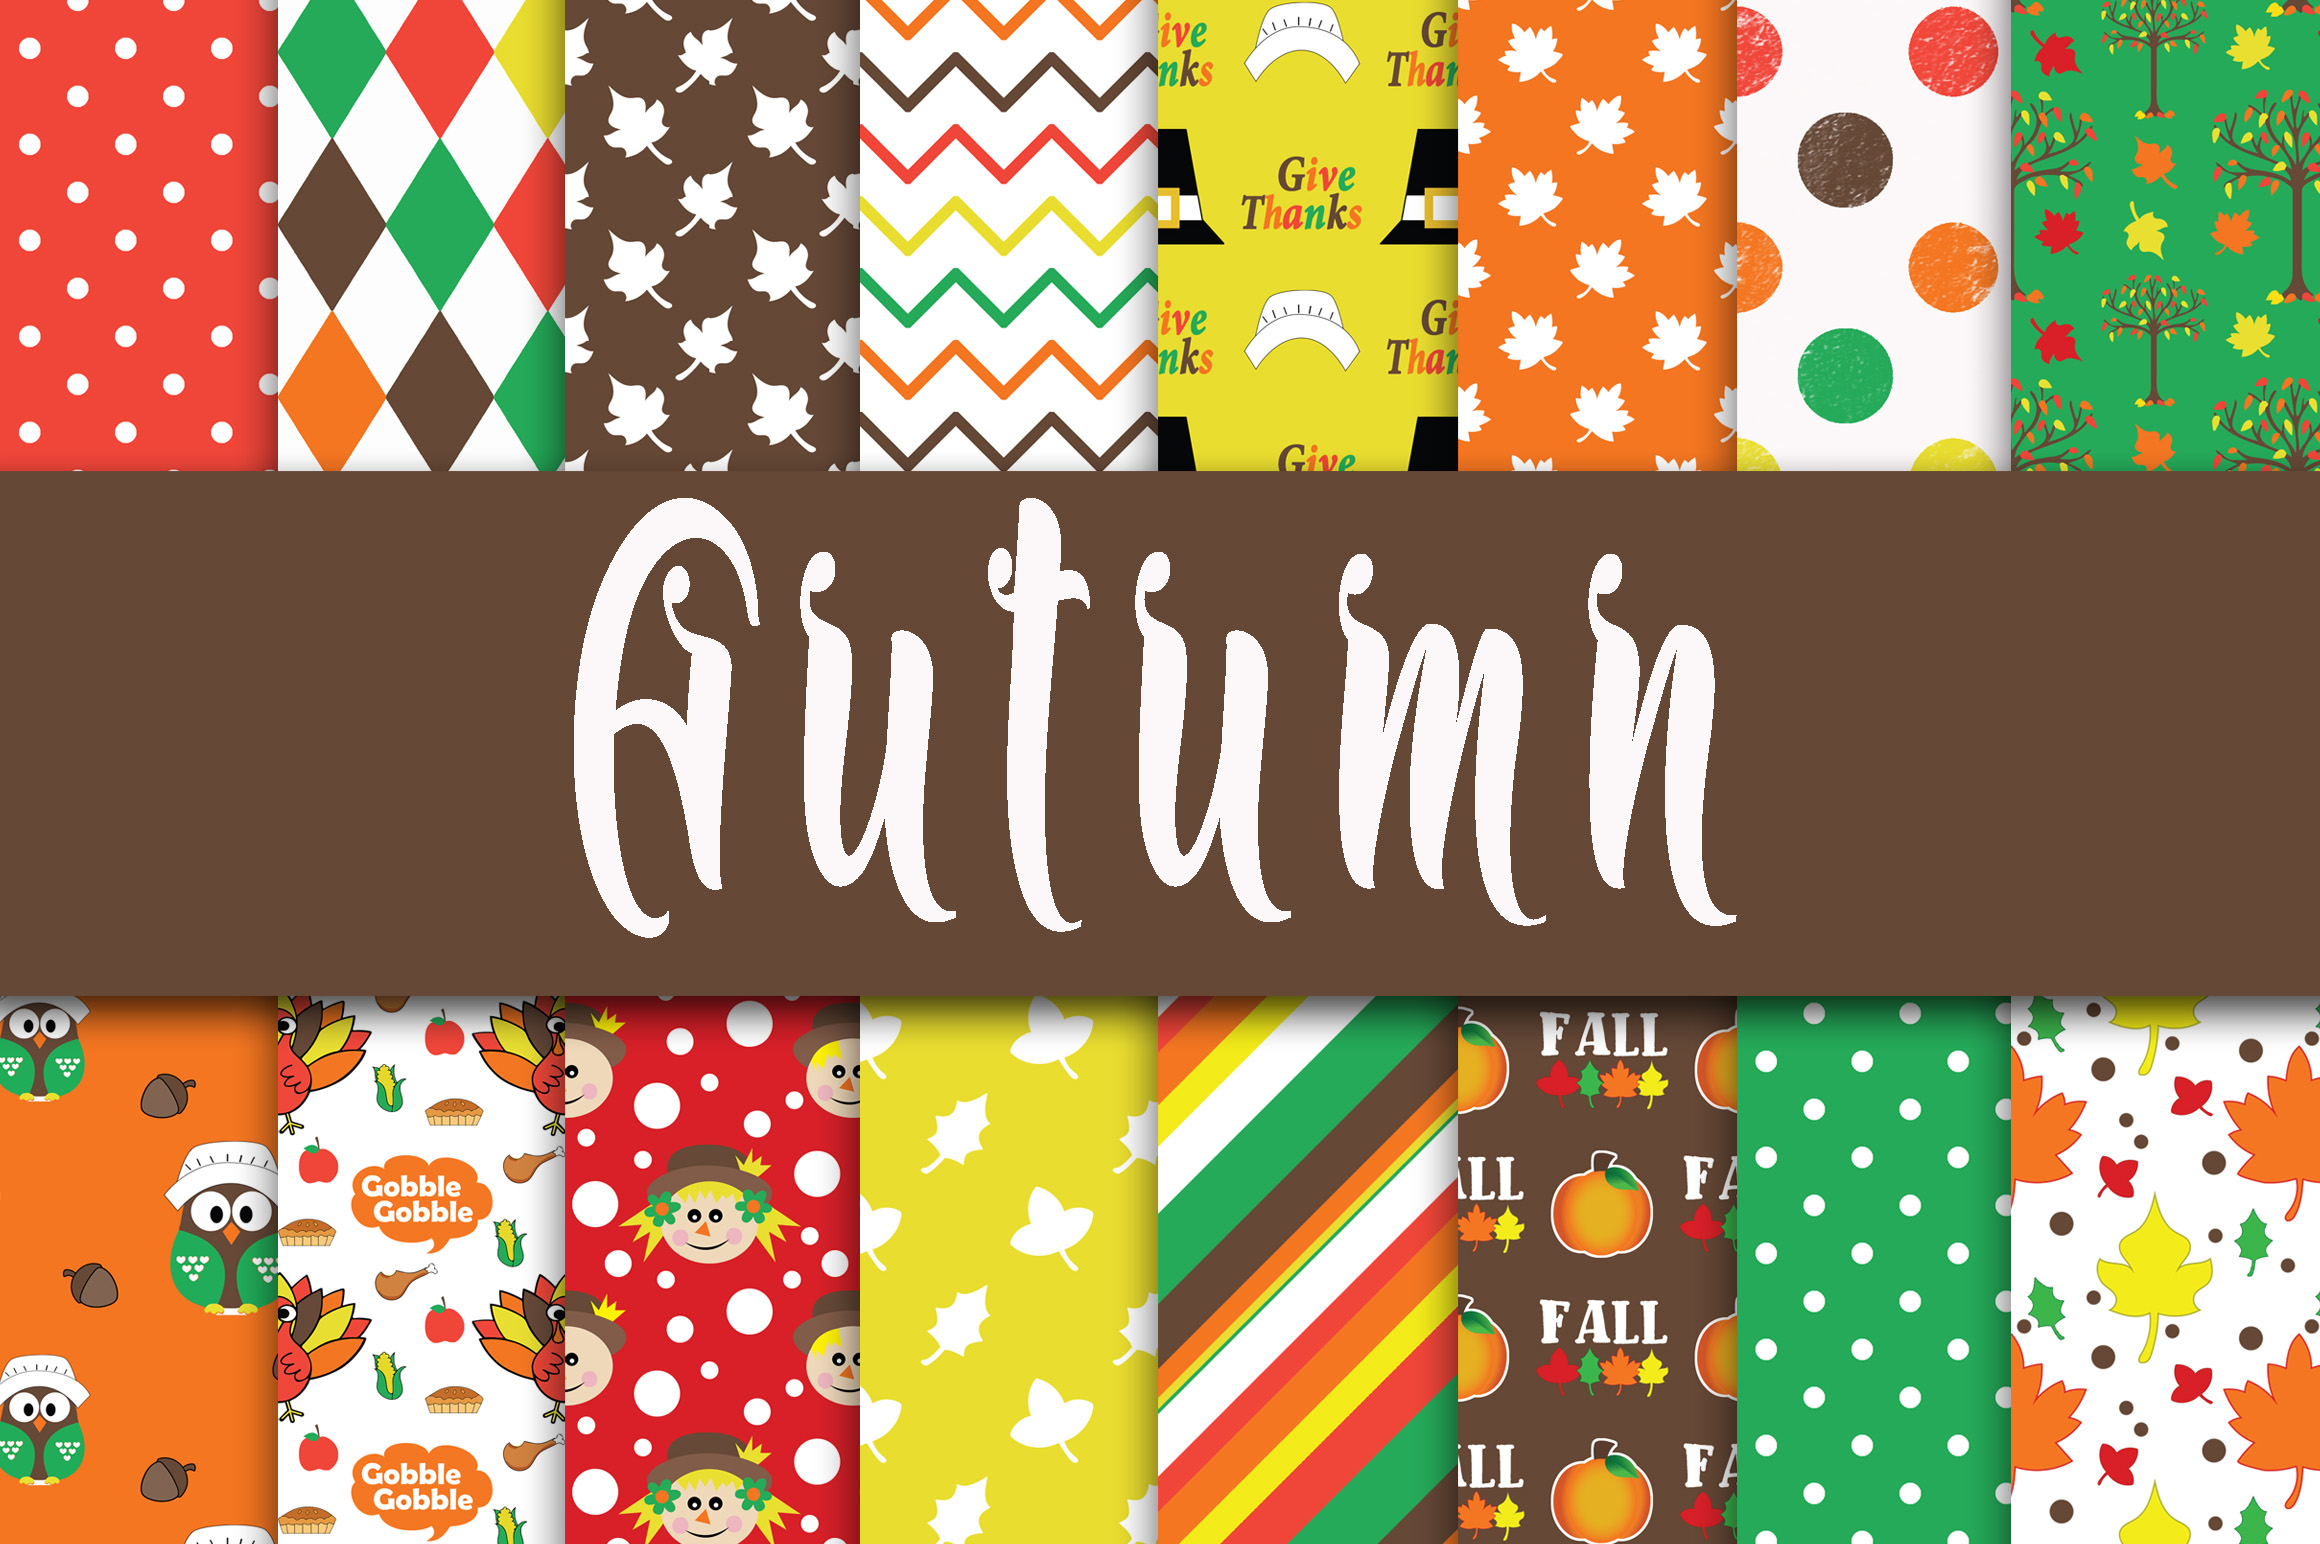 Autumn Digital Paper Graphic By oldmarketdesigns